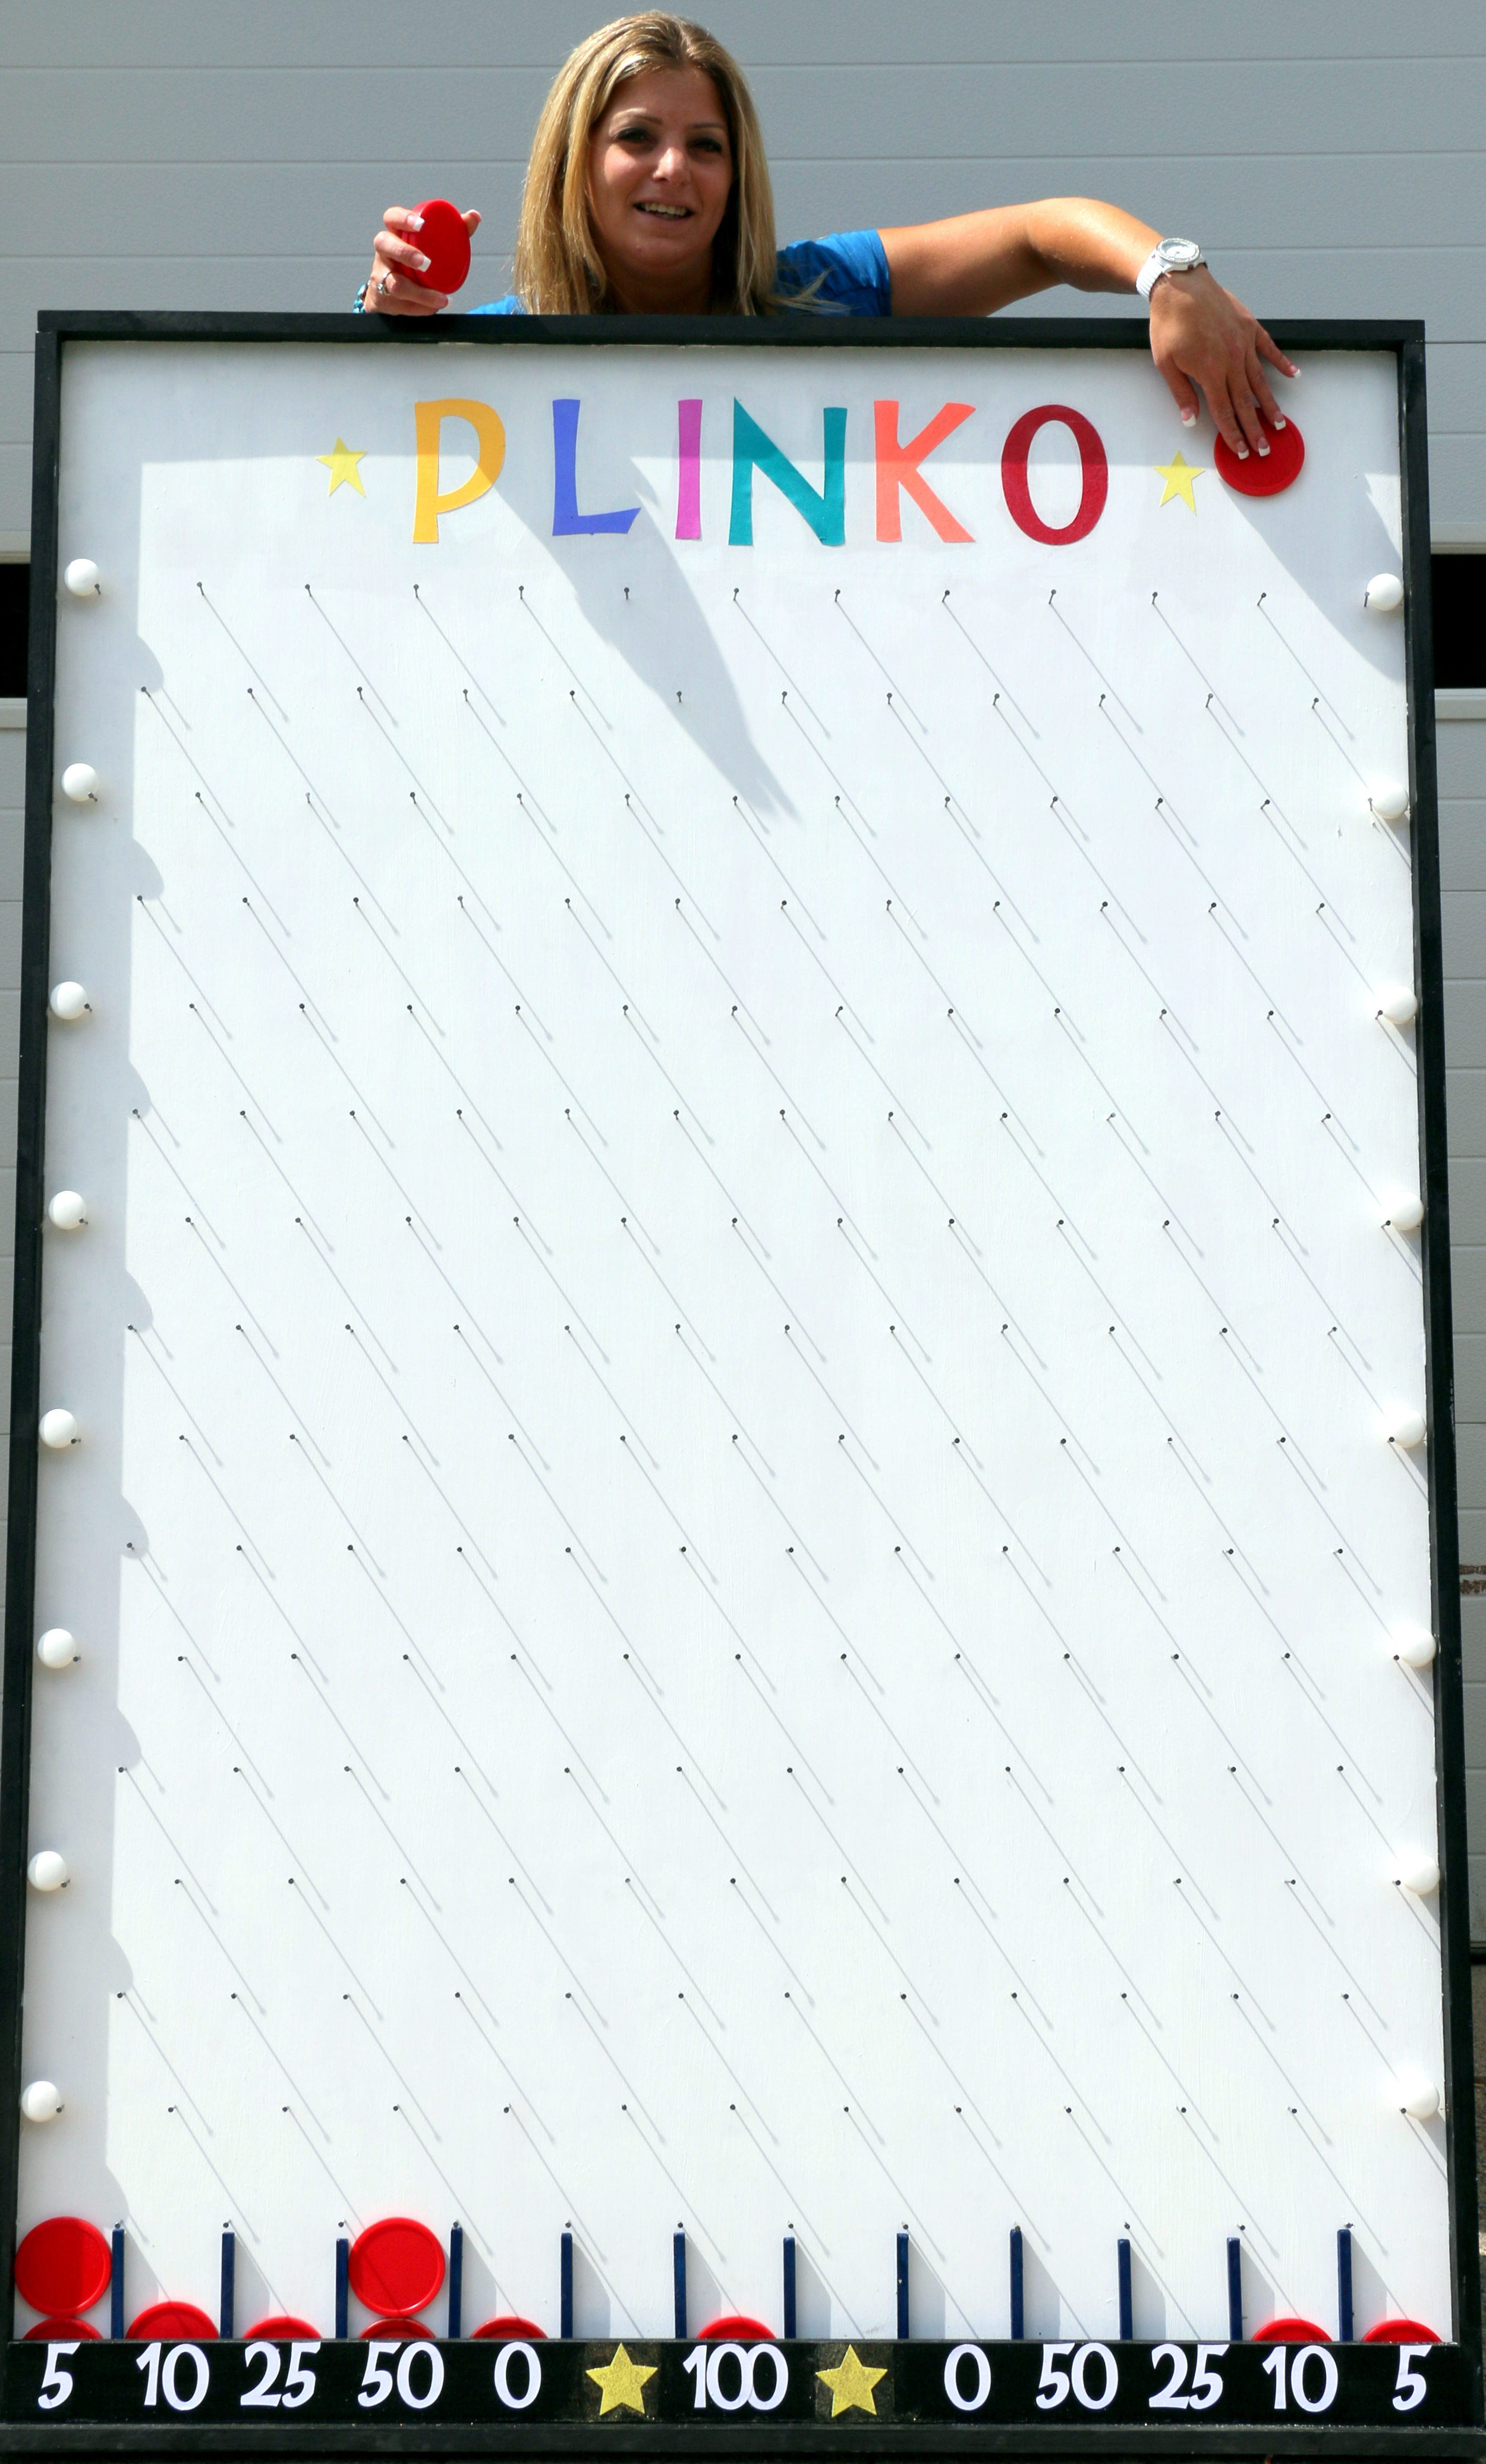 Plinko is great for Casino and Carnival Themes, Grand Openings, School or Trade Show Events, and much more. Can be customized for your next event. Measures 6' high and 4' wide.